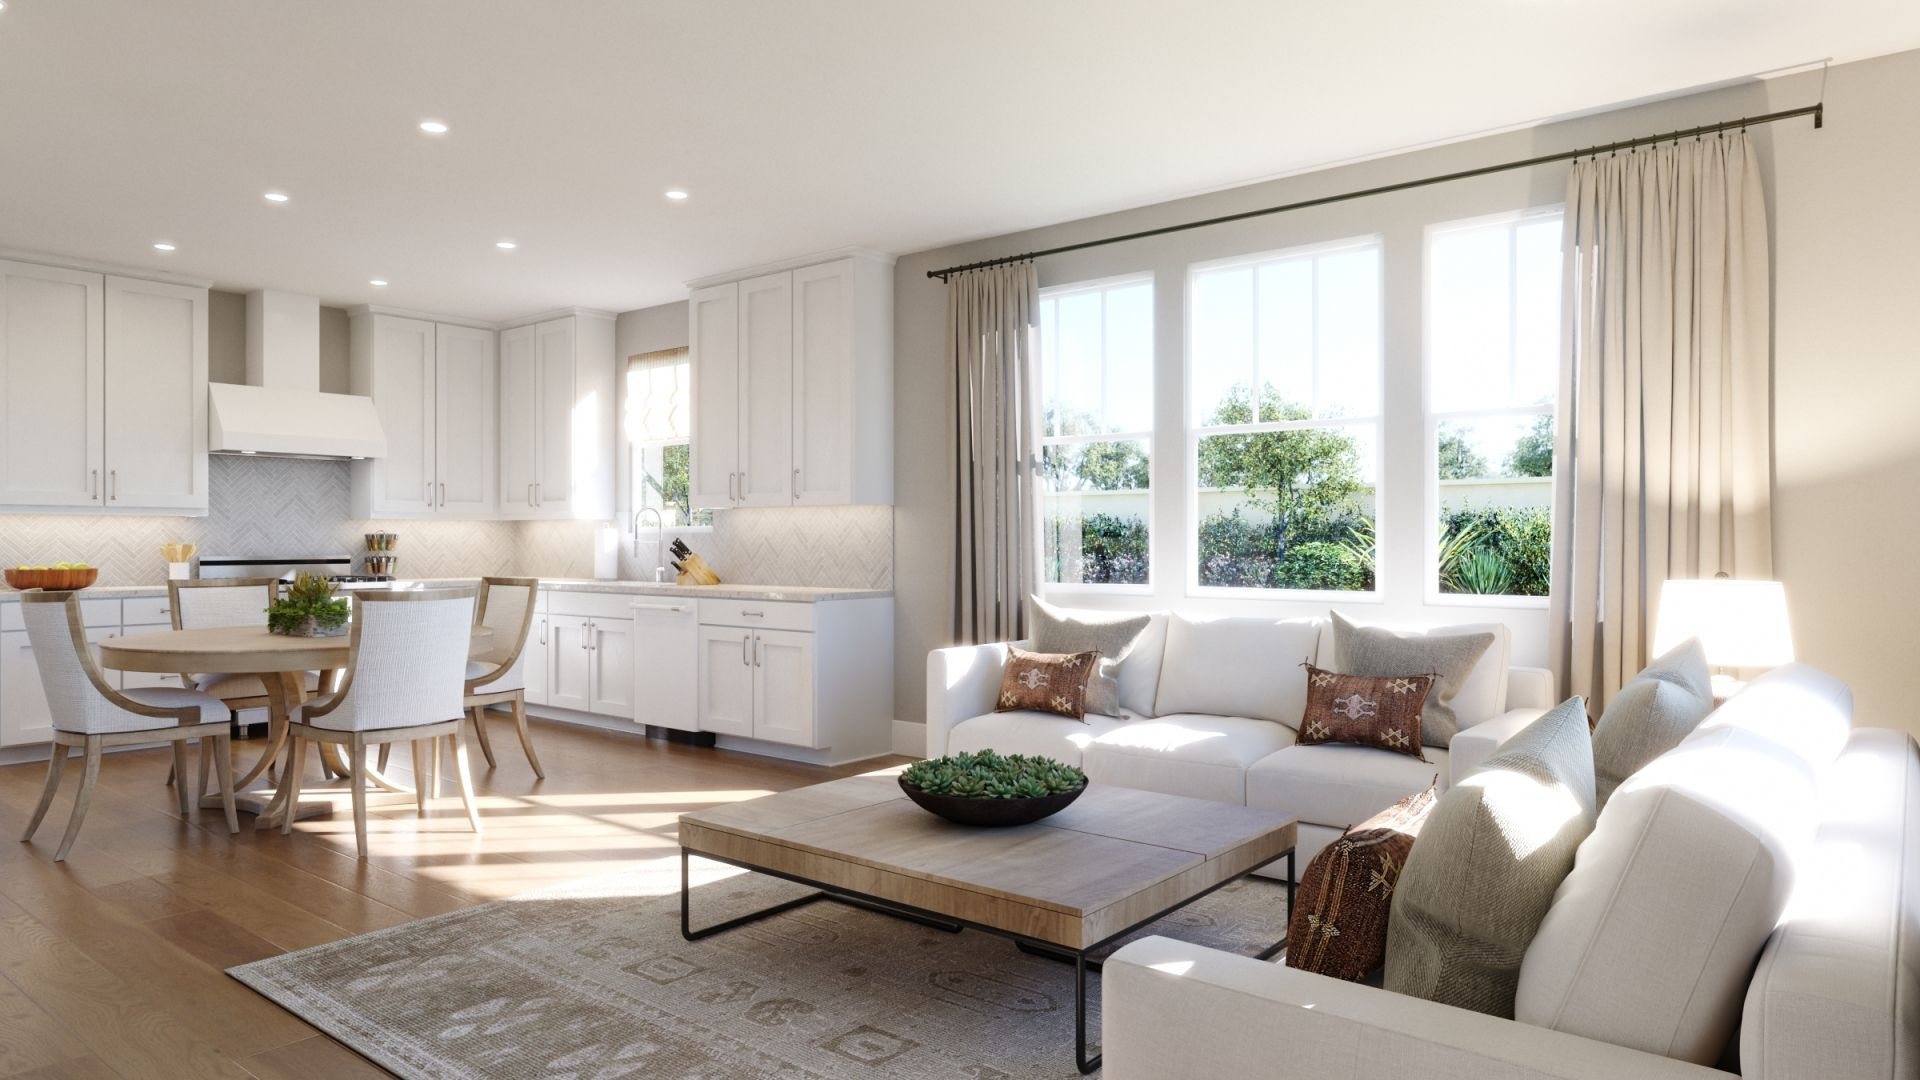 Living Area featured in the 1E By SummerHill Homes in San Jose, CA